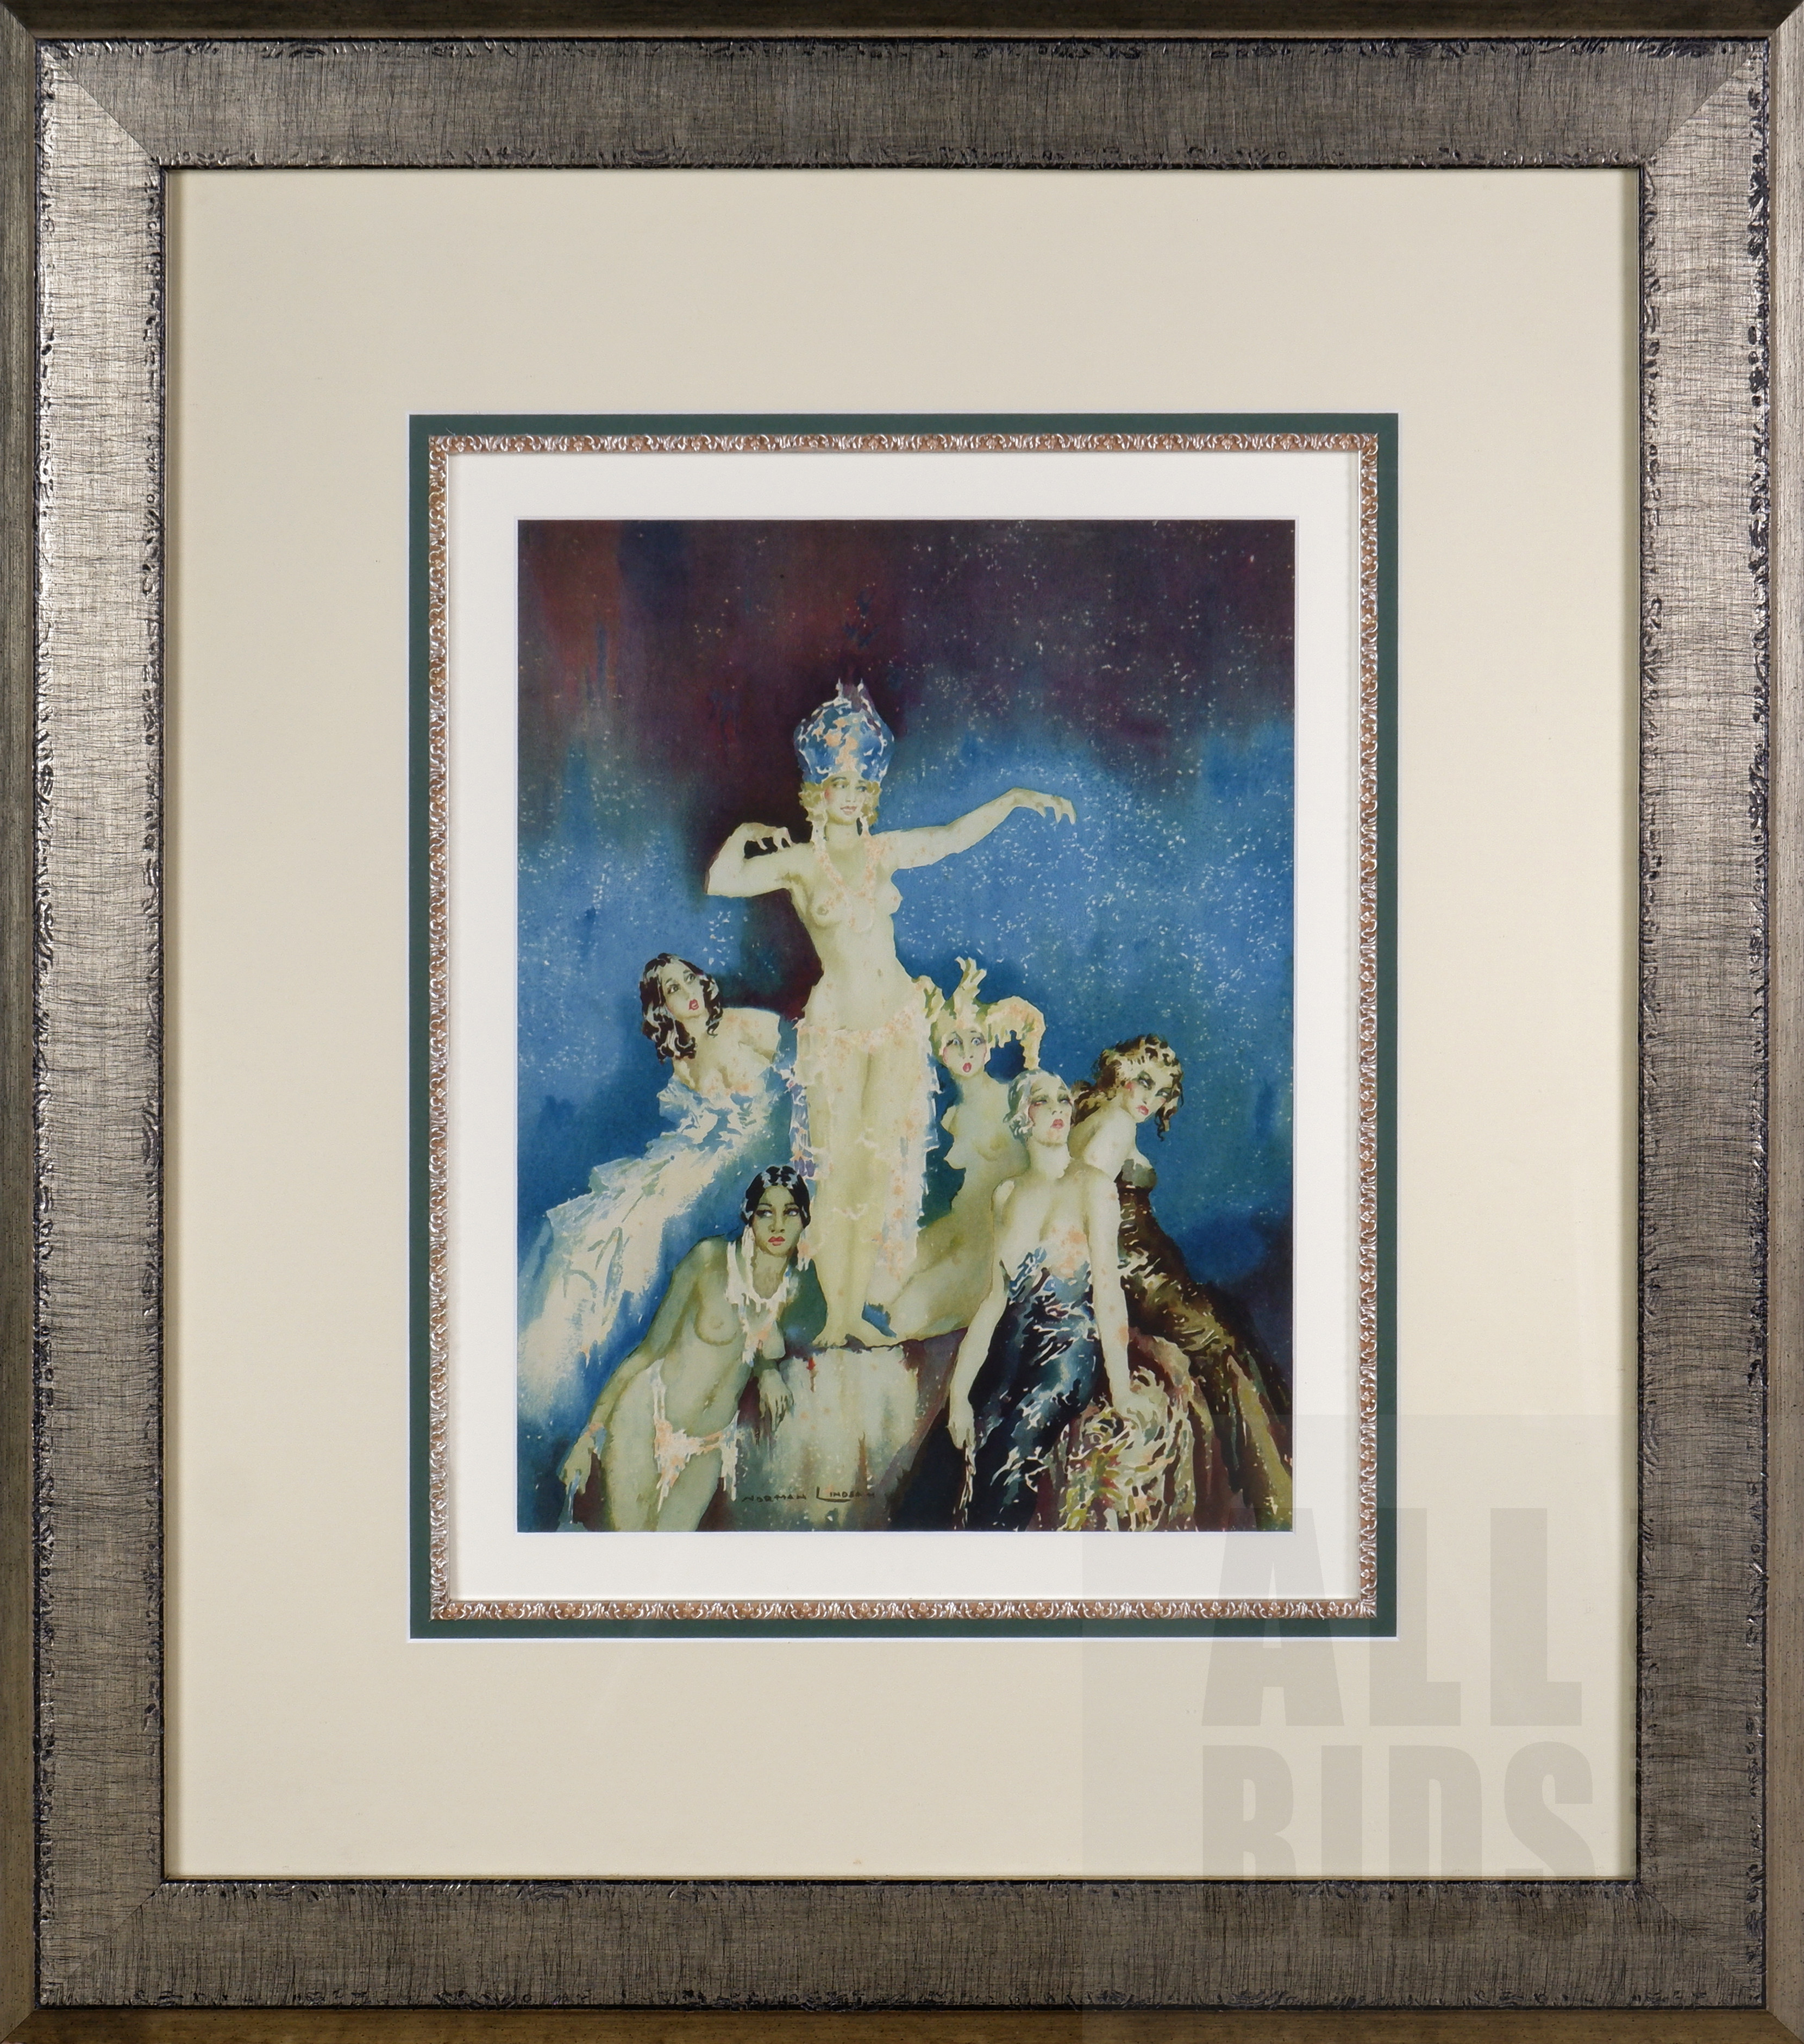 'Norman Lindsay (1879-1969), Benevolence 1934, Lithograph, 37 x 28.5 cm (image size)'